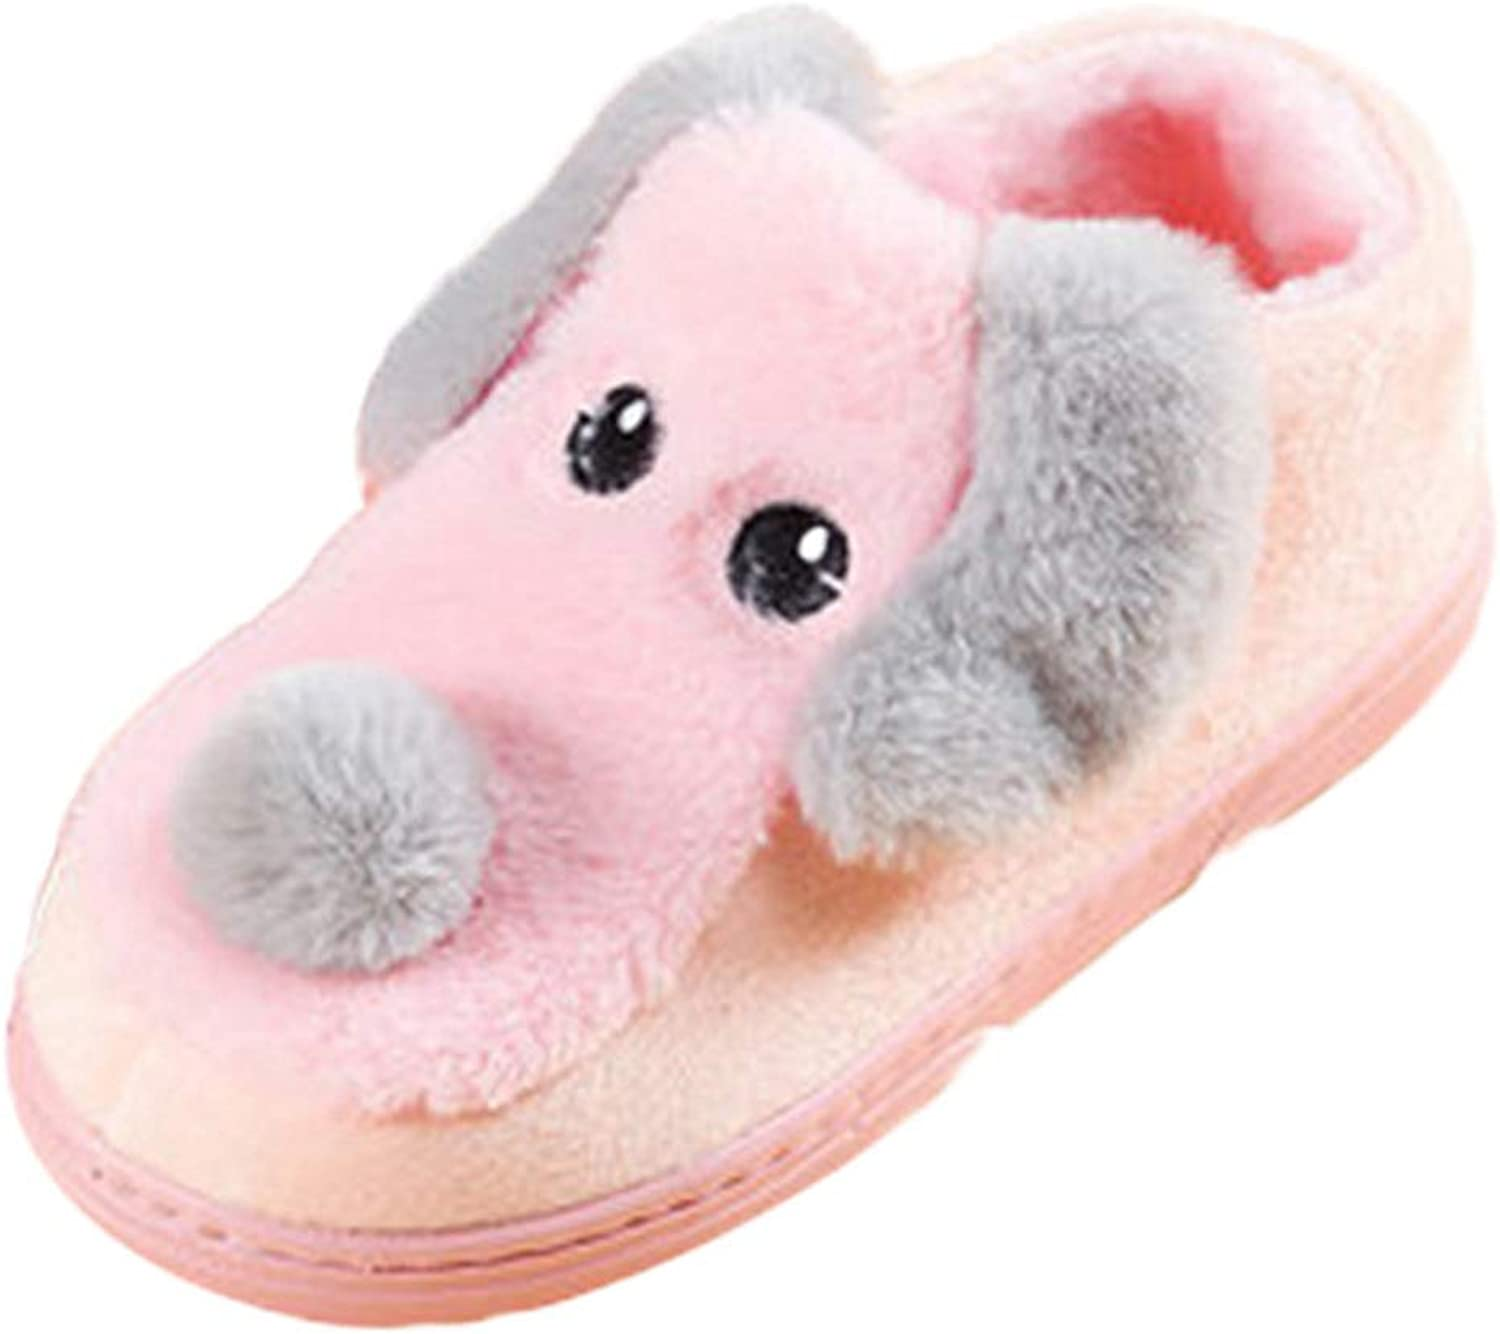 Winter Boots shoes Female Home Cute Women Animal Pattern Non-Slip Round Toe Thick Heel Cotton Slippers